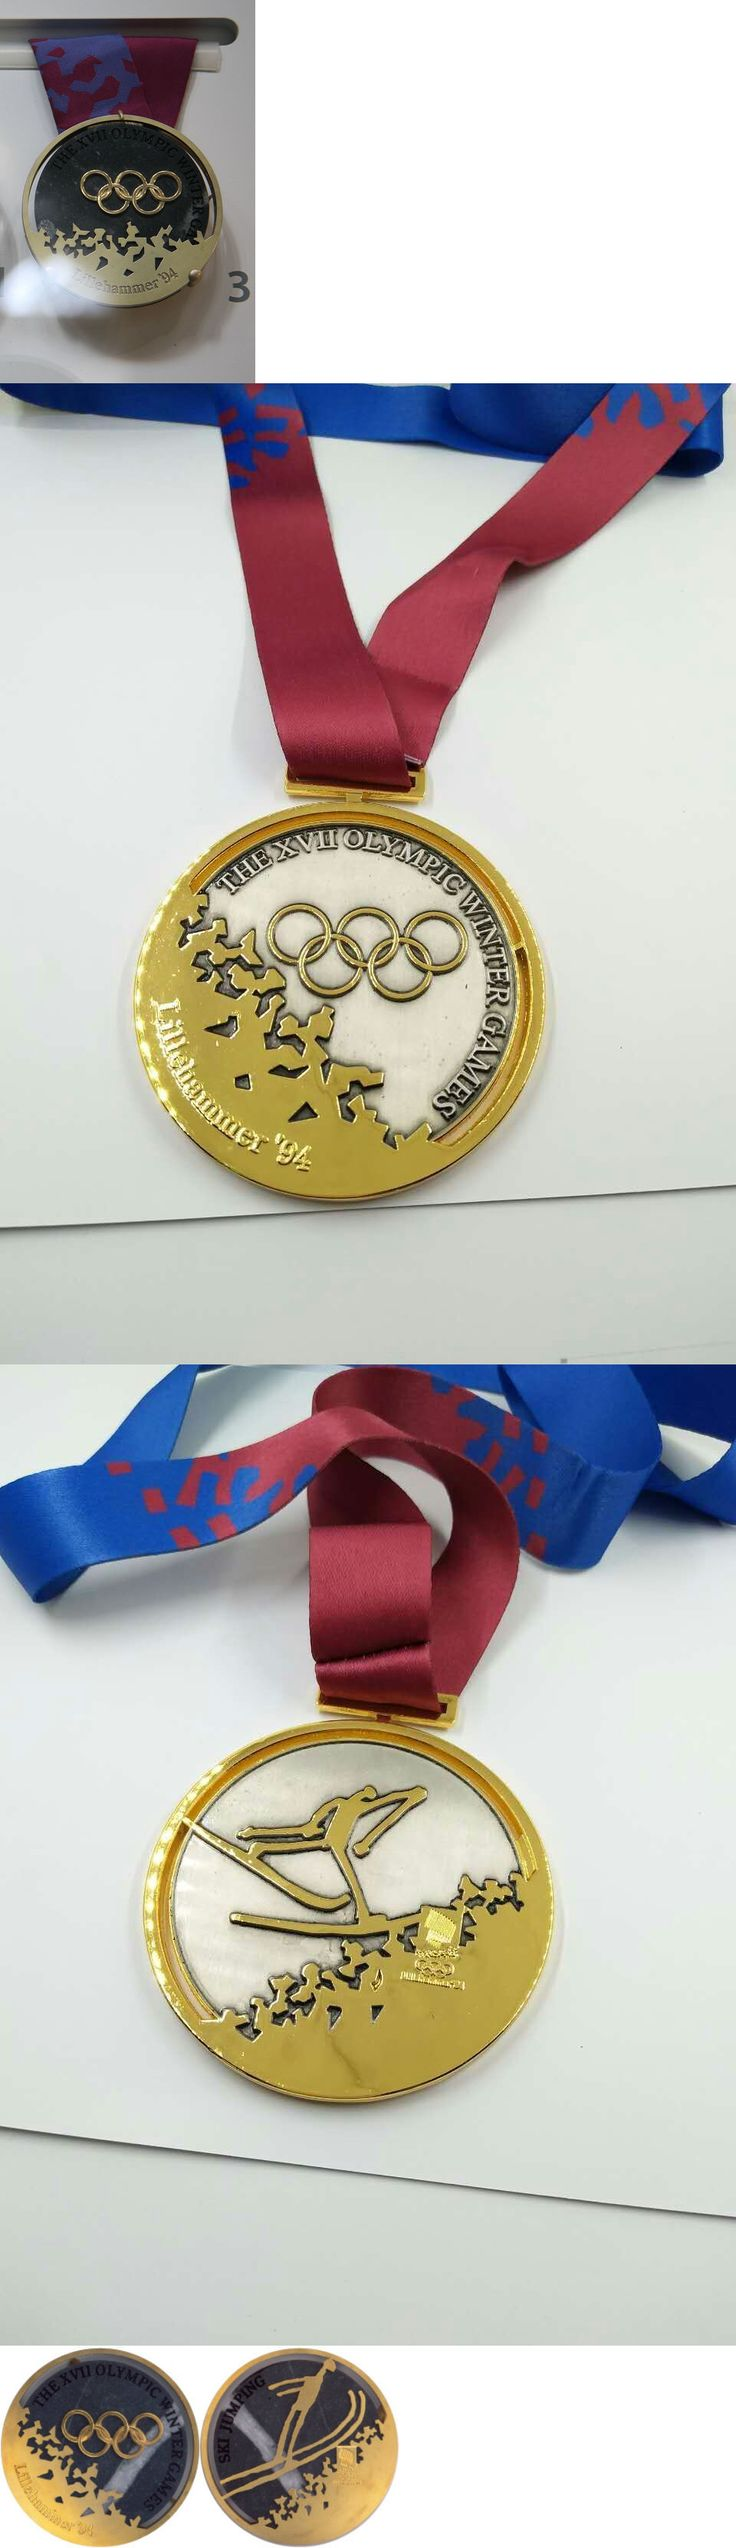 Olympics 27291: Lillehammer Norway 1994 Olympic Gold Medal With Ribbon! -> BUY IT NOW ONLY: $34.9 on eBay!